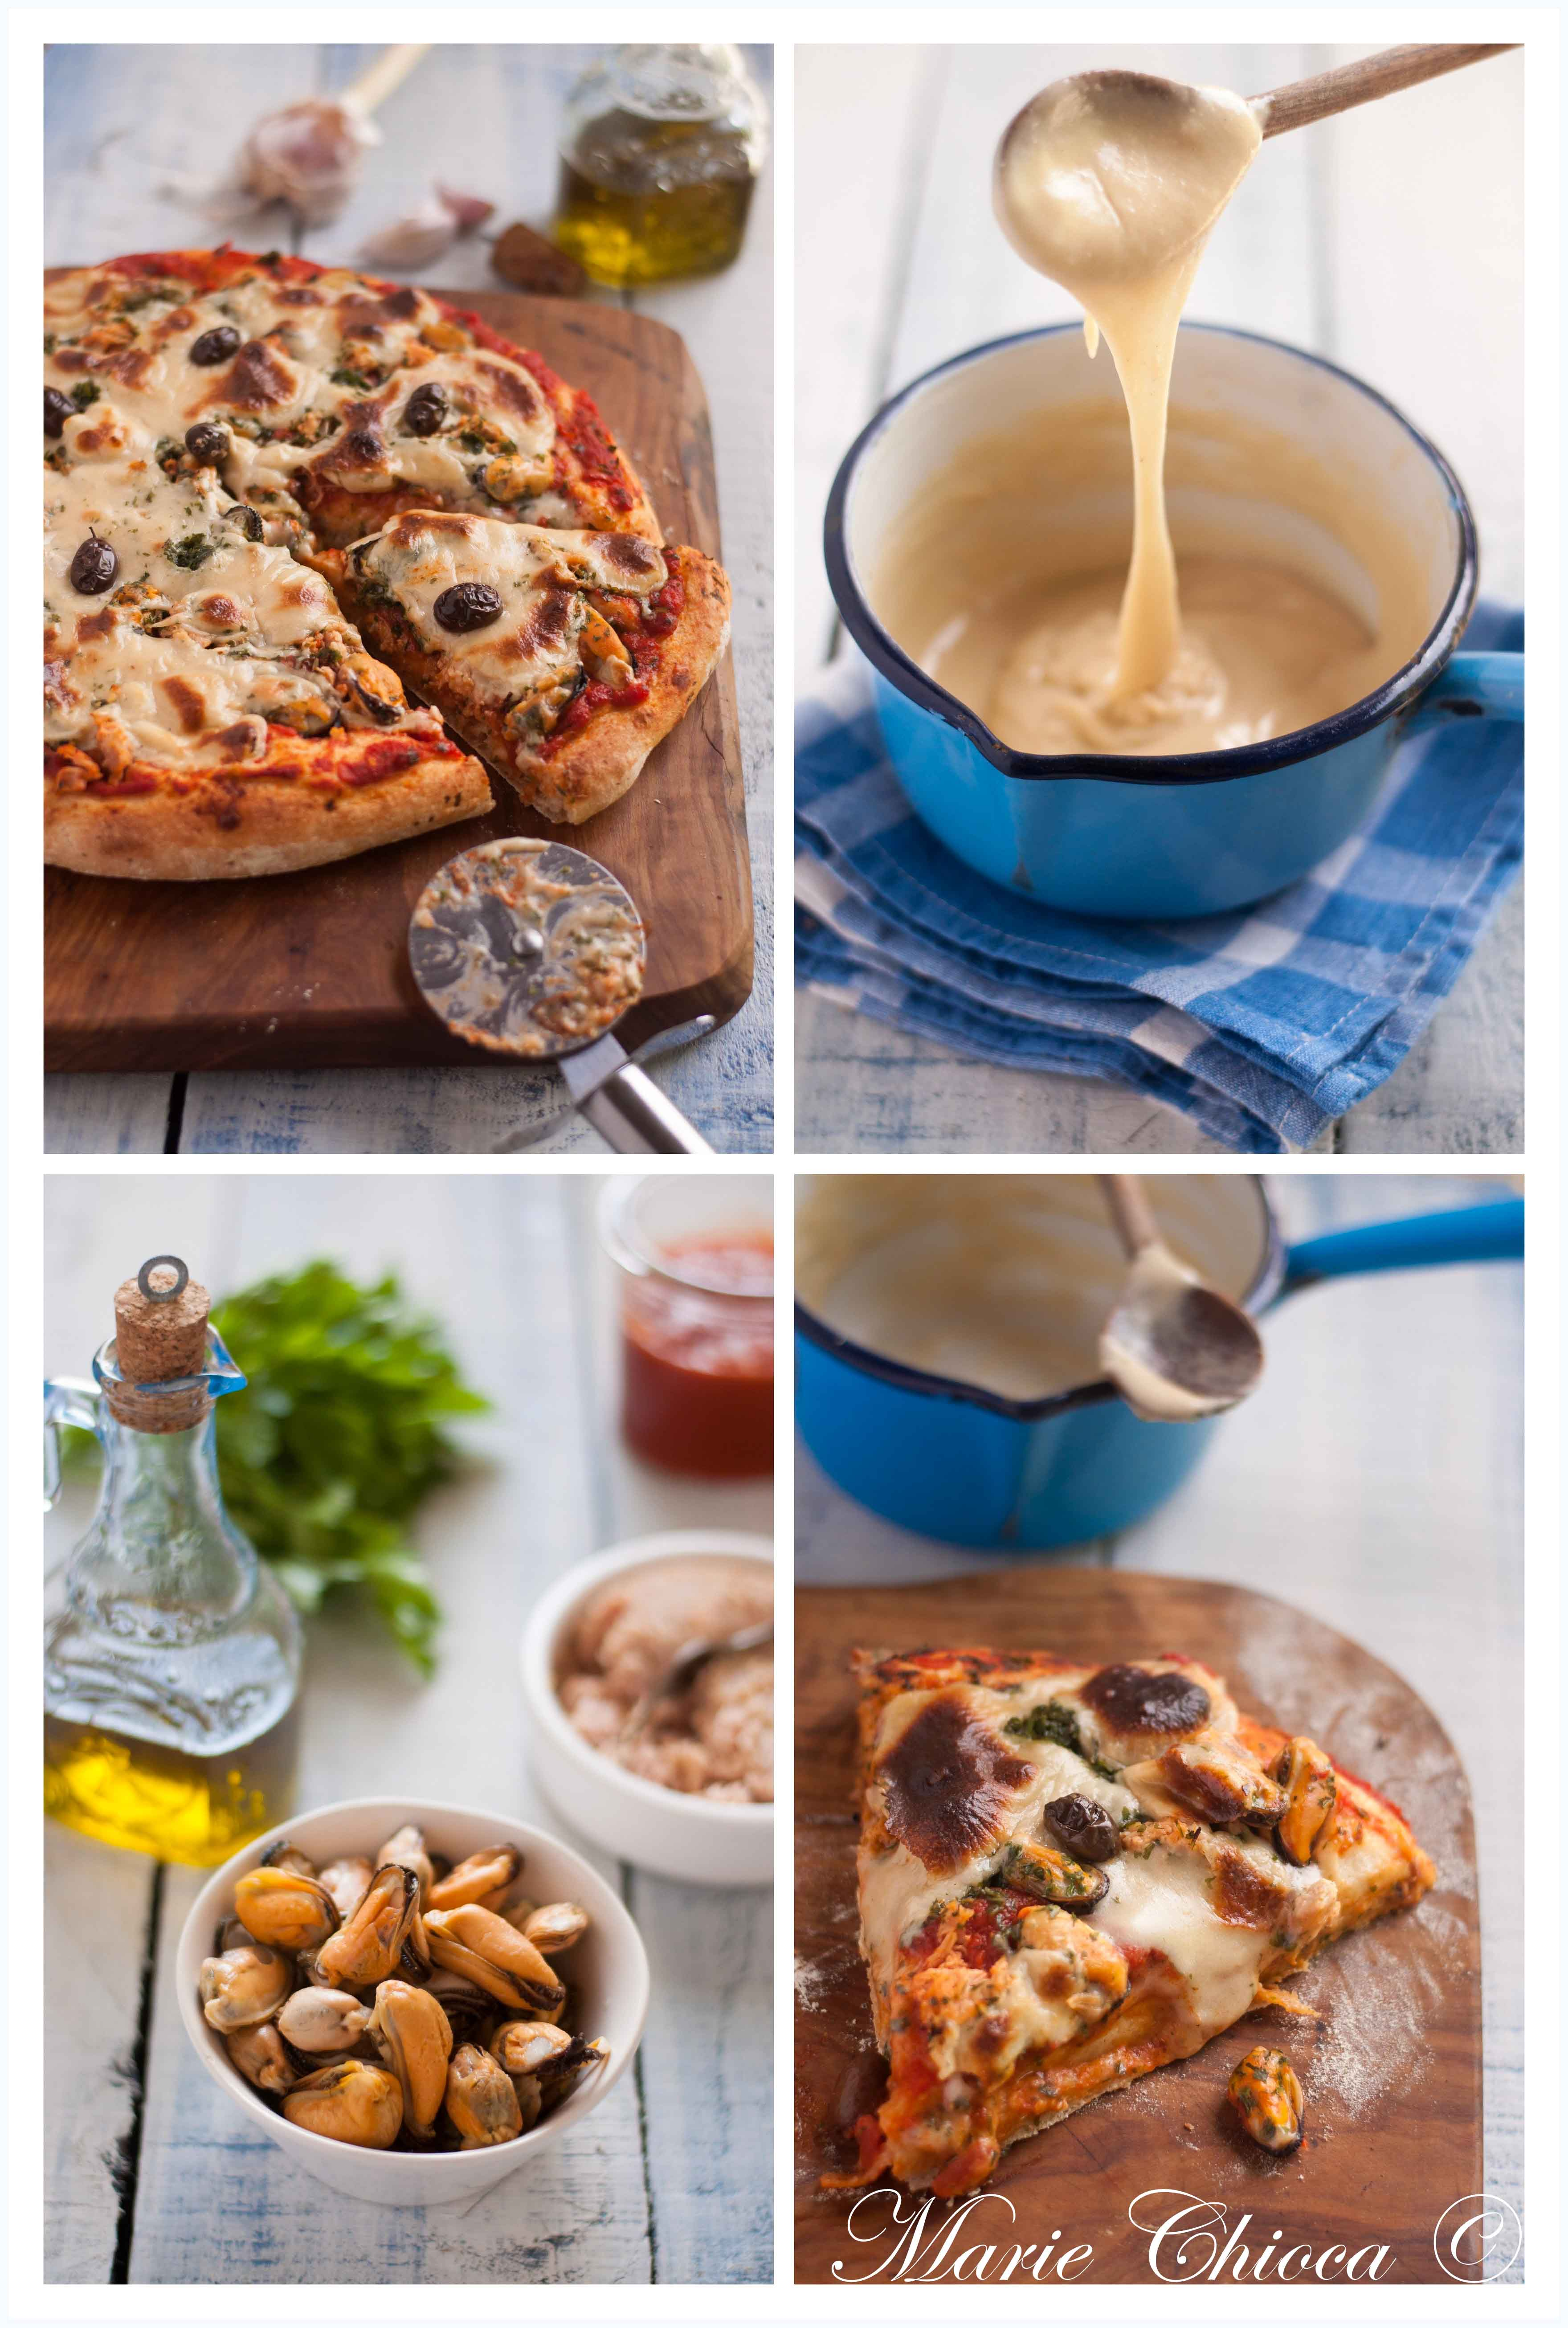 pizza-marinara-au-fromage-coulant-montage-2